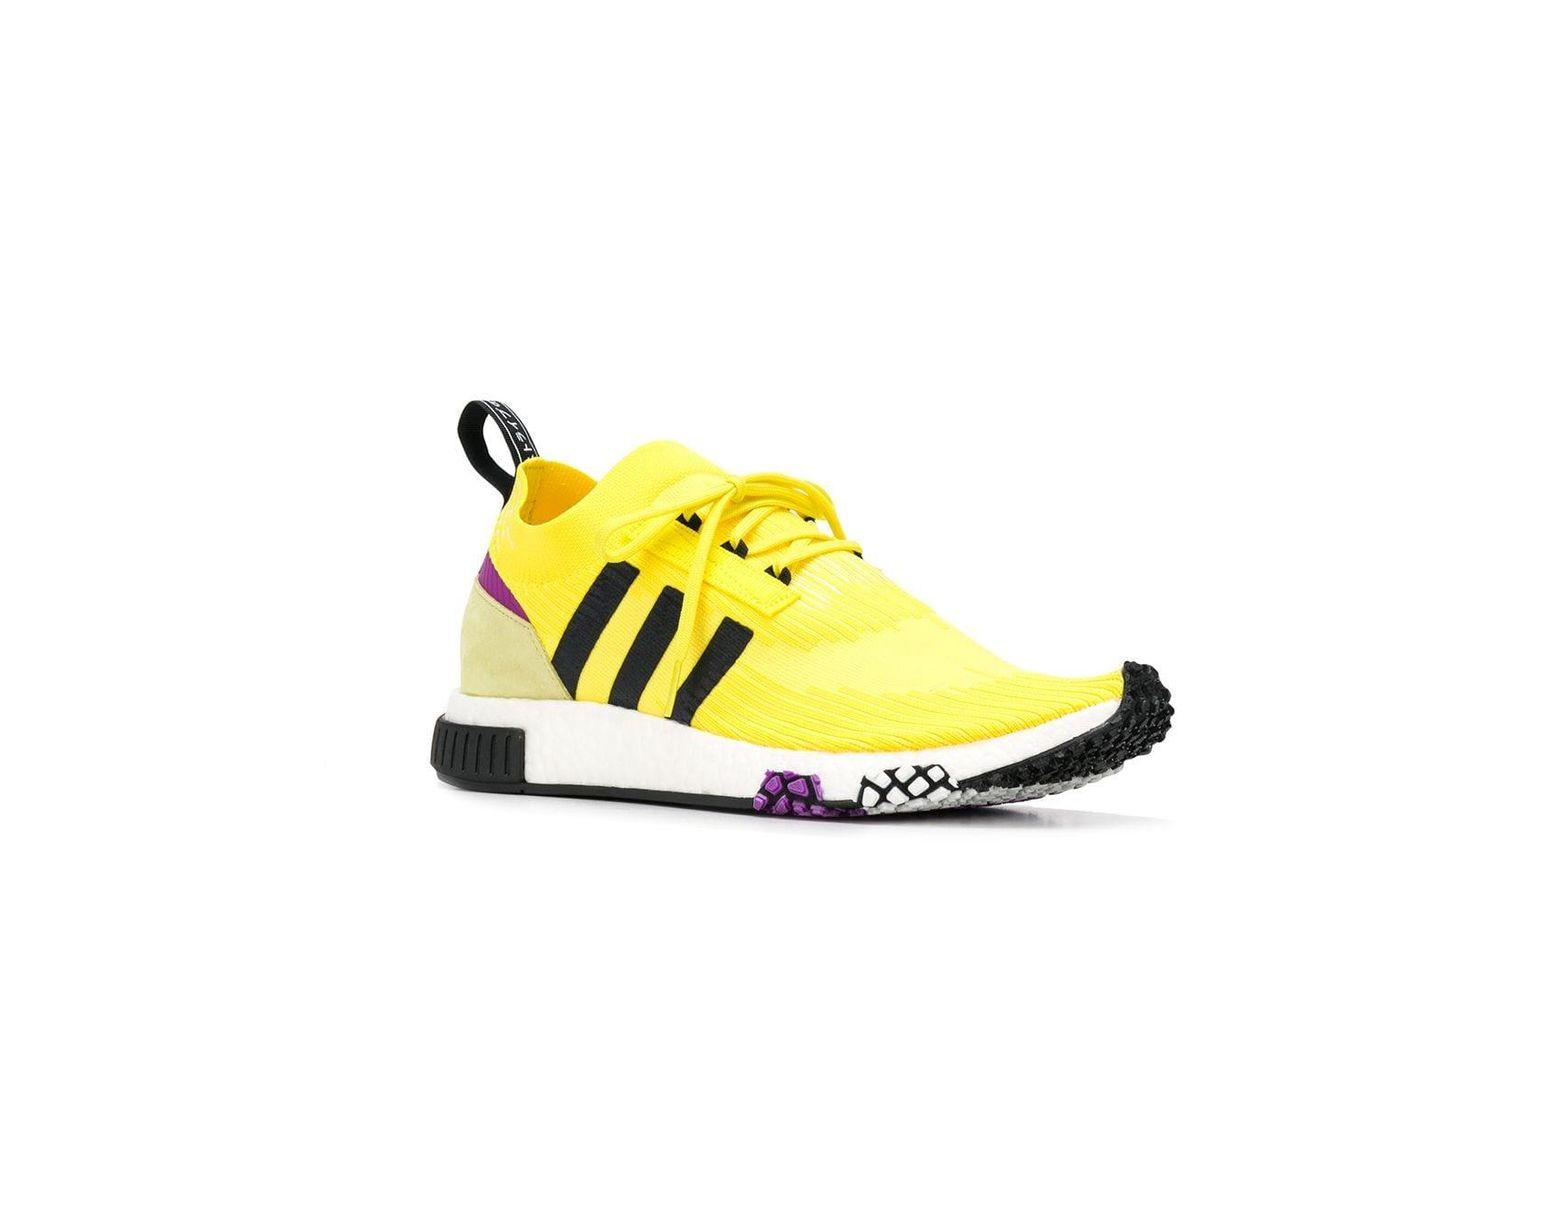 2de0625422100 Lyst - adidas Yellow And Black Nmd Racer Sneakers in Yellow for Men